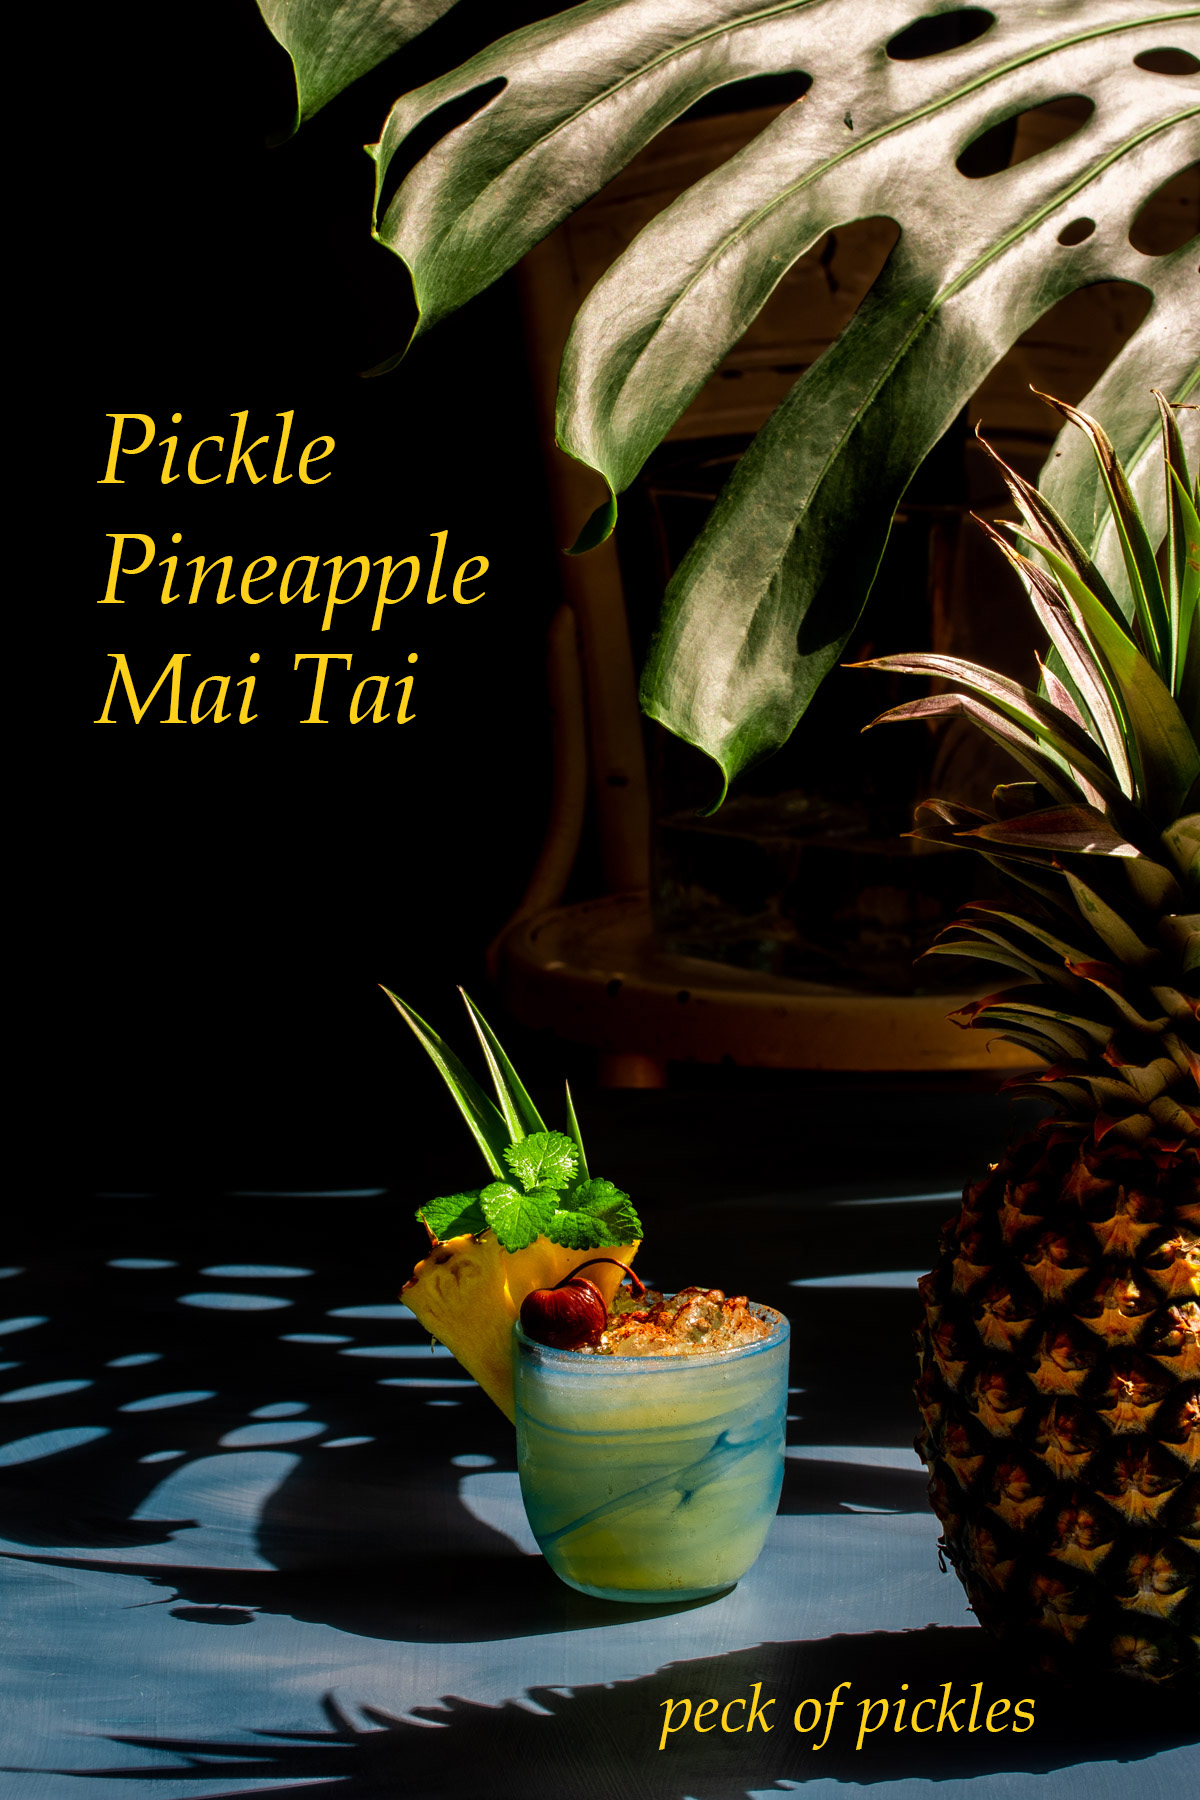 pickle pineapple shrub mai tai cocktail with pineapple in foreground and shadows in background